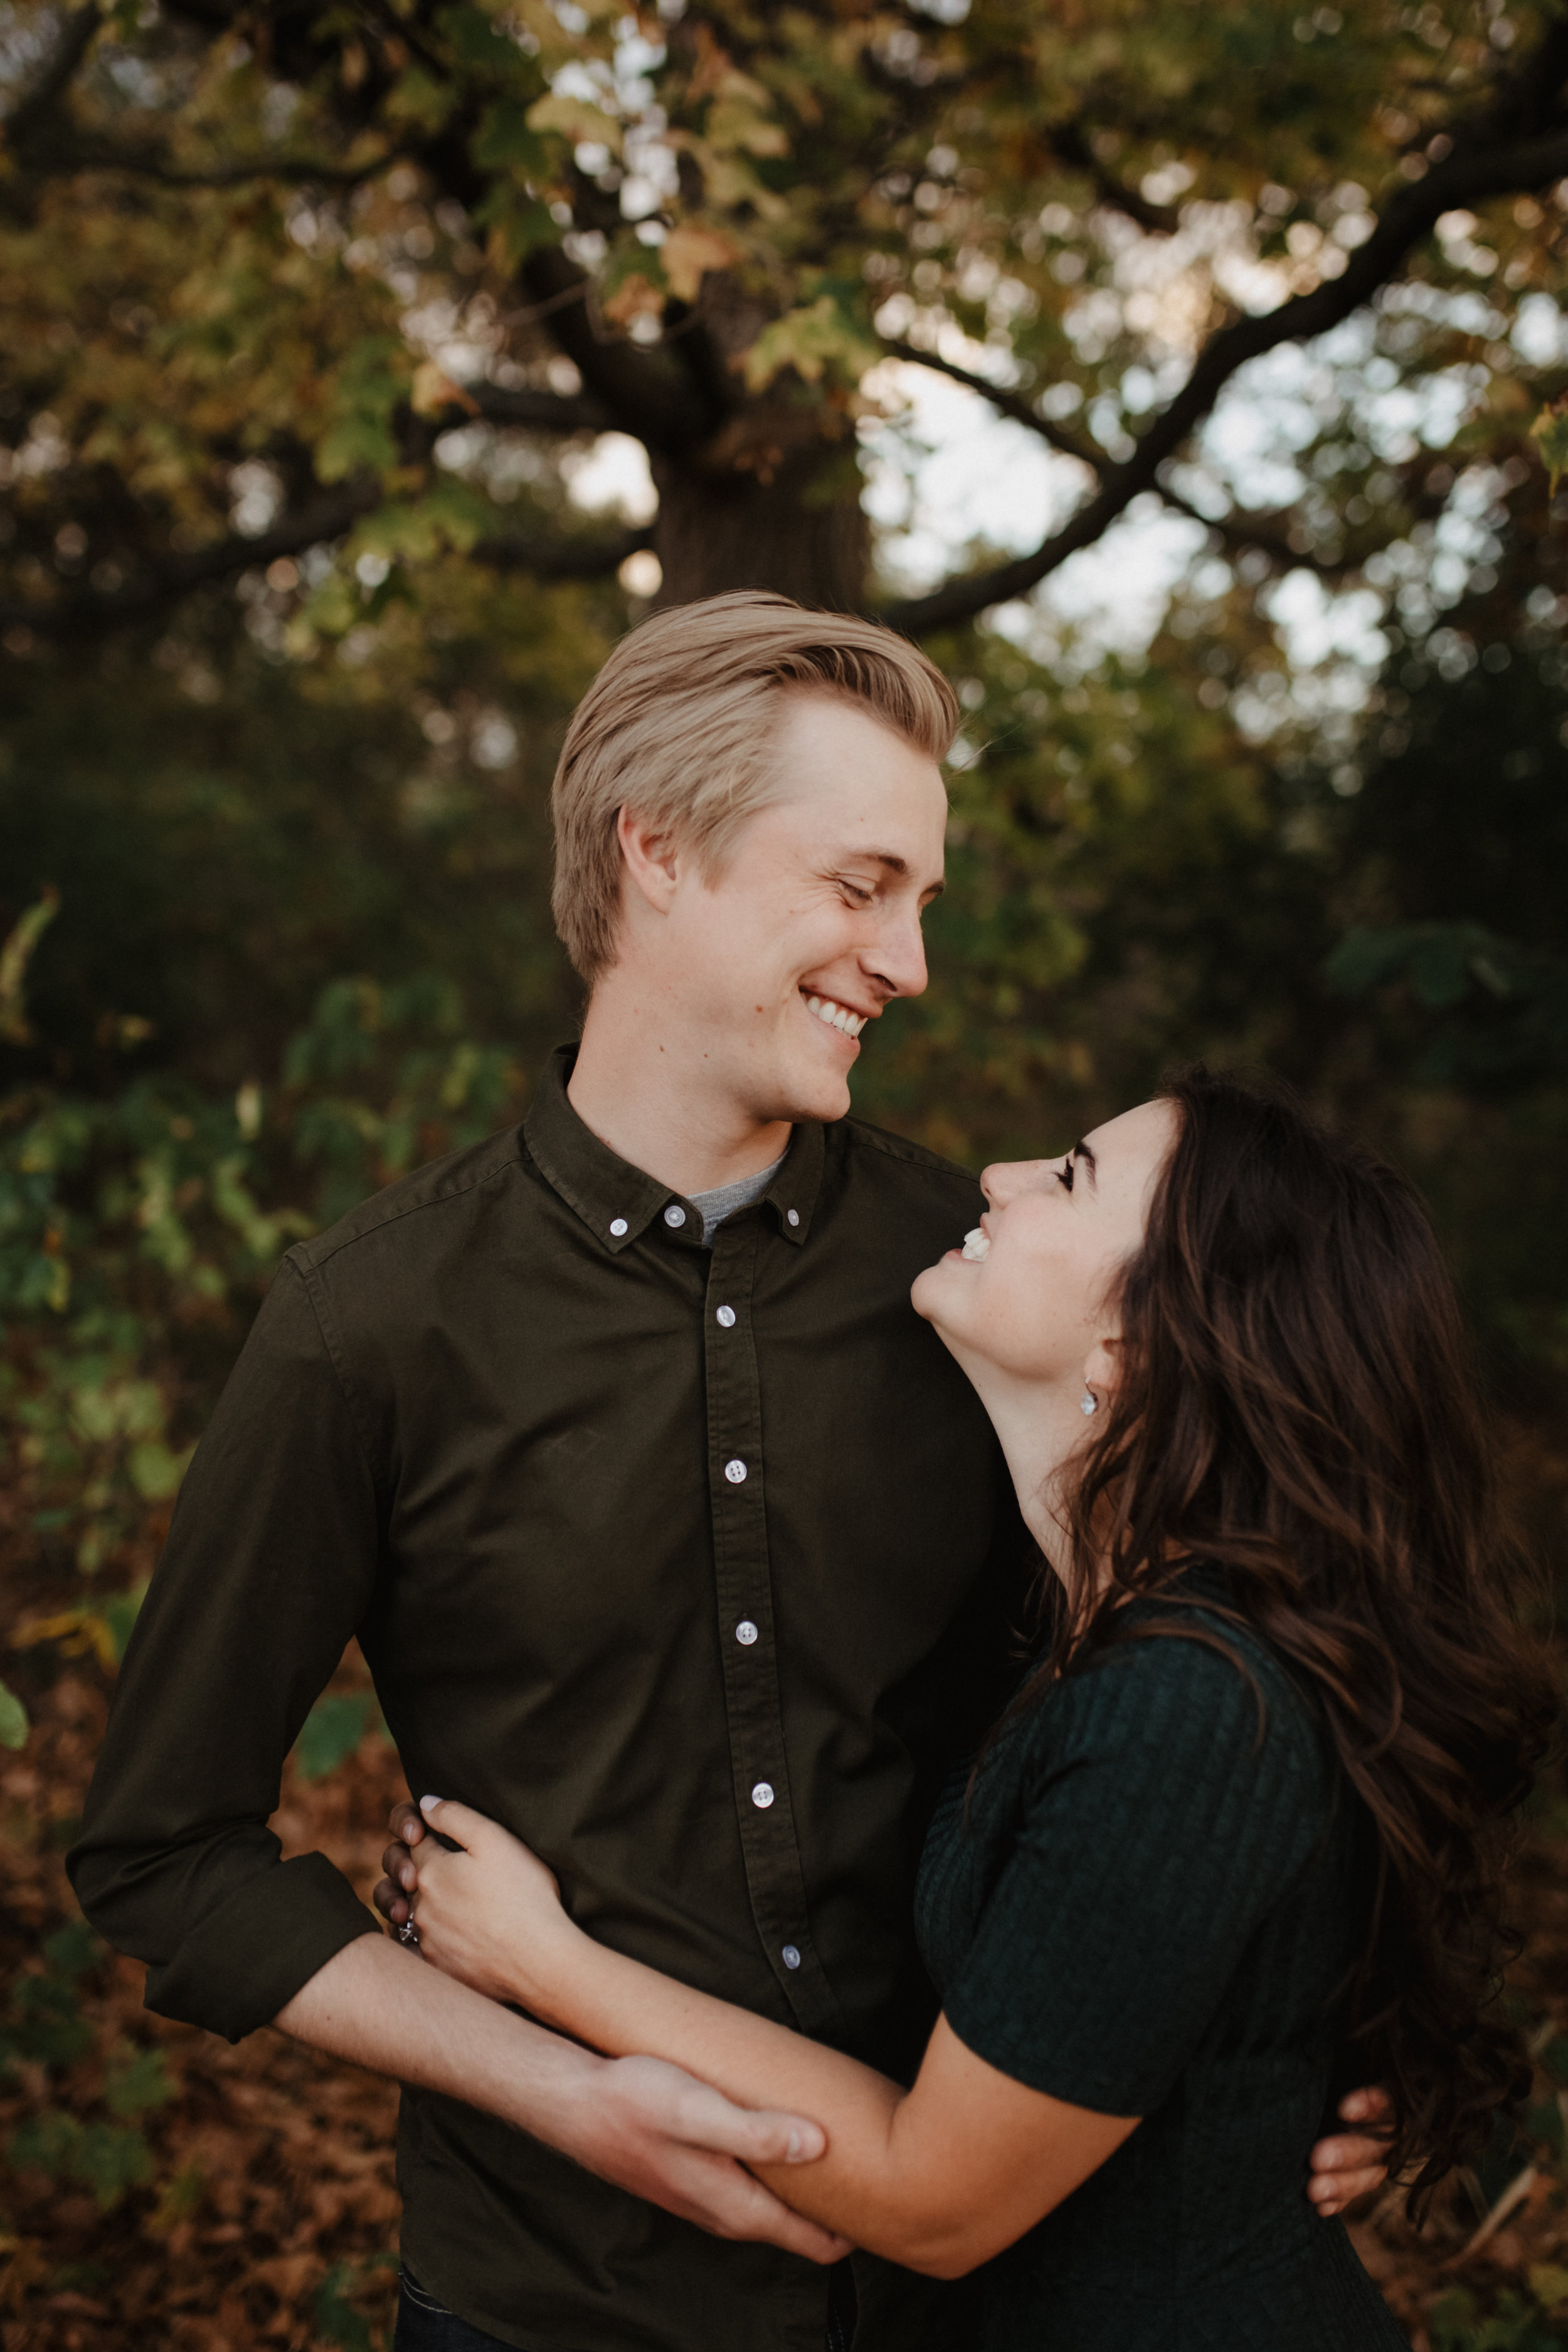 Claire-Rex-Pickar-Engagement-Photography-Collection-432.jpg